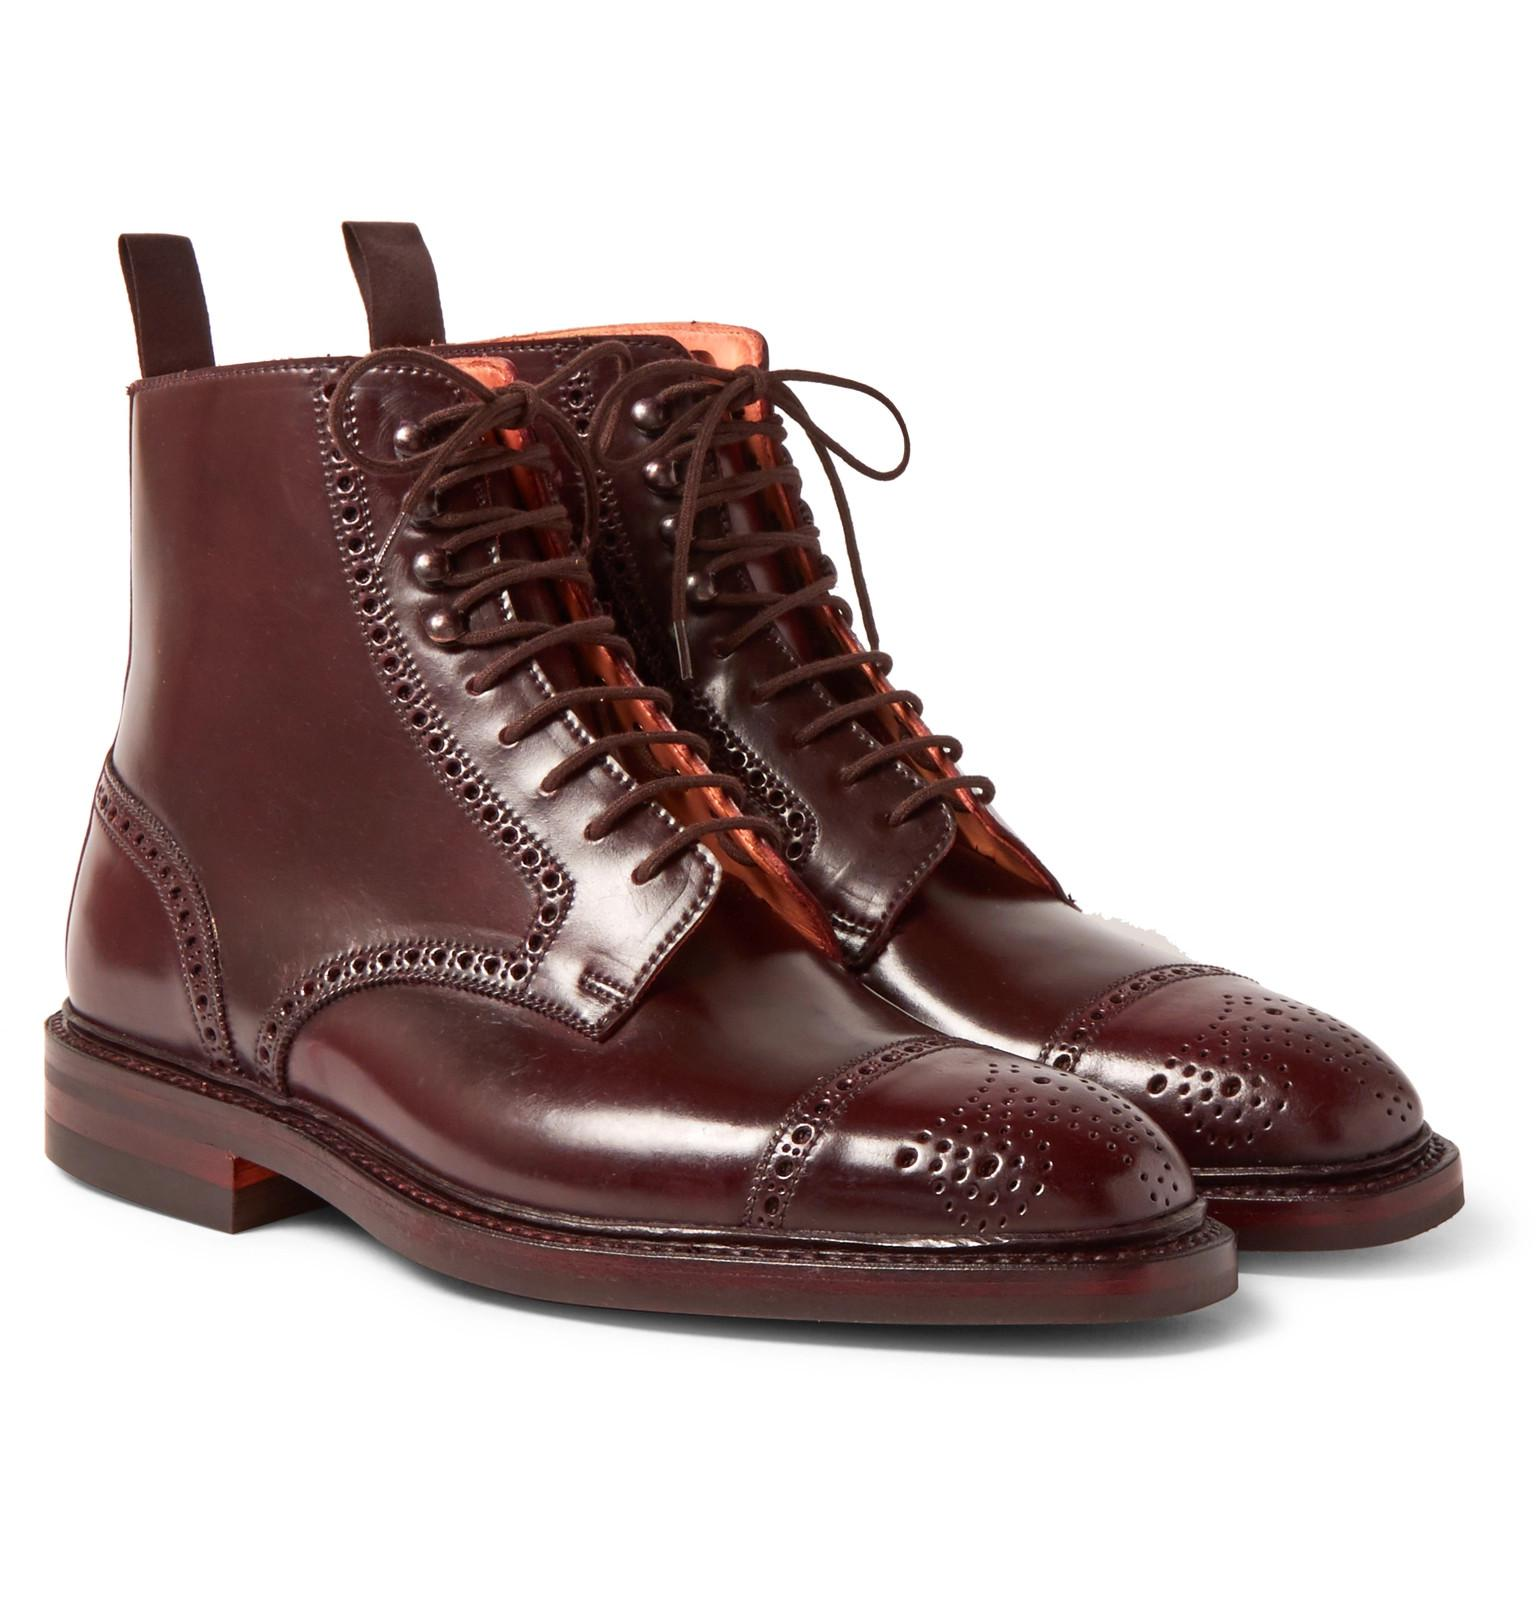 browse online George Cleverley William Cap-Toe Horween Shell Cordovan Leather Boots outlet buy NN0XMp2GS